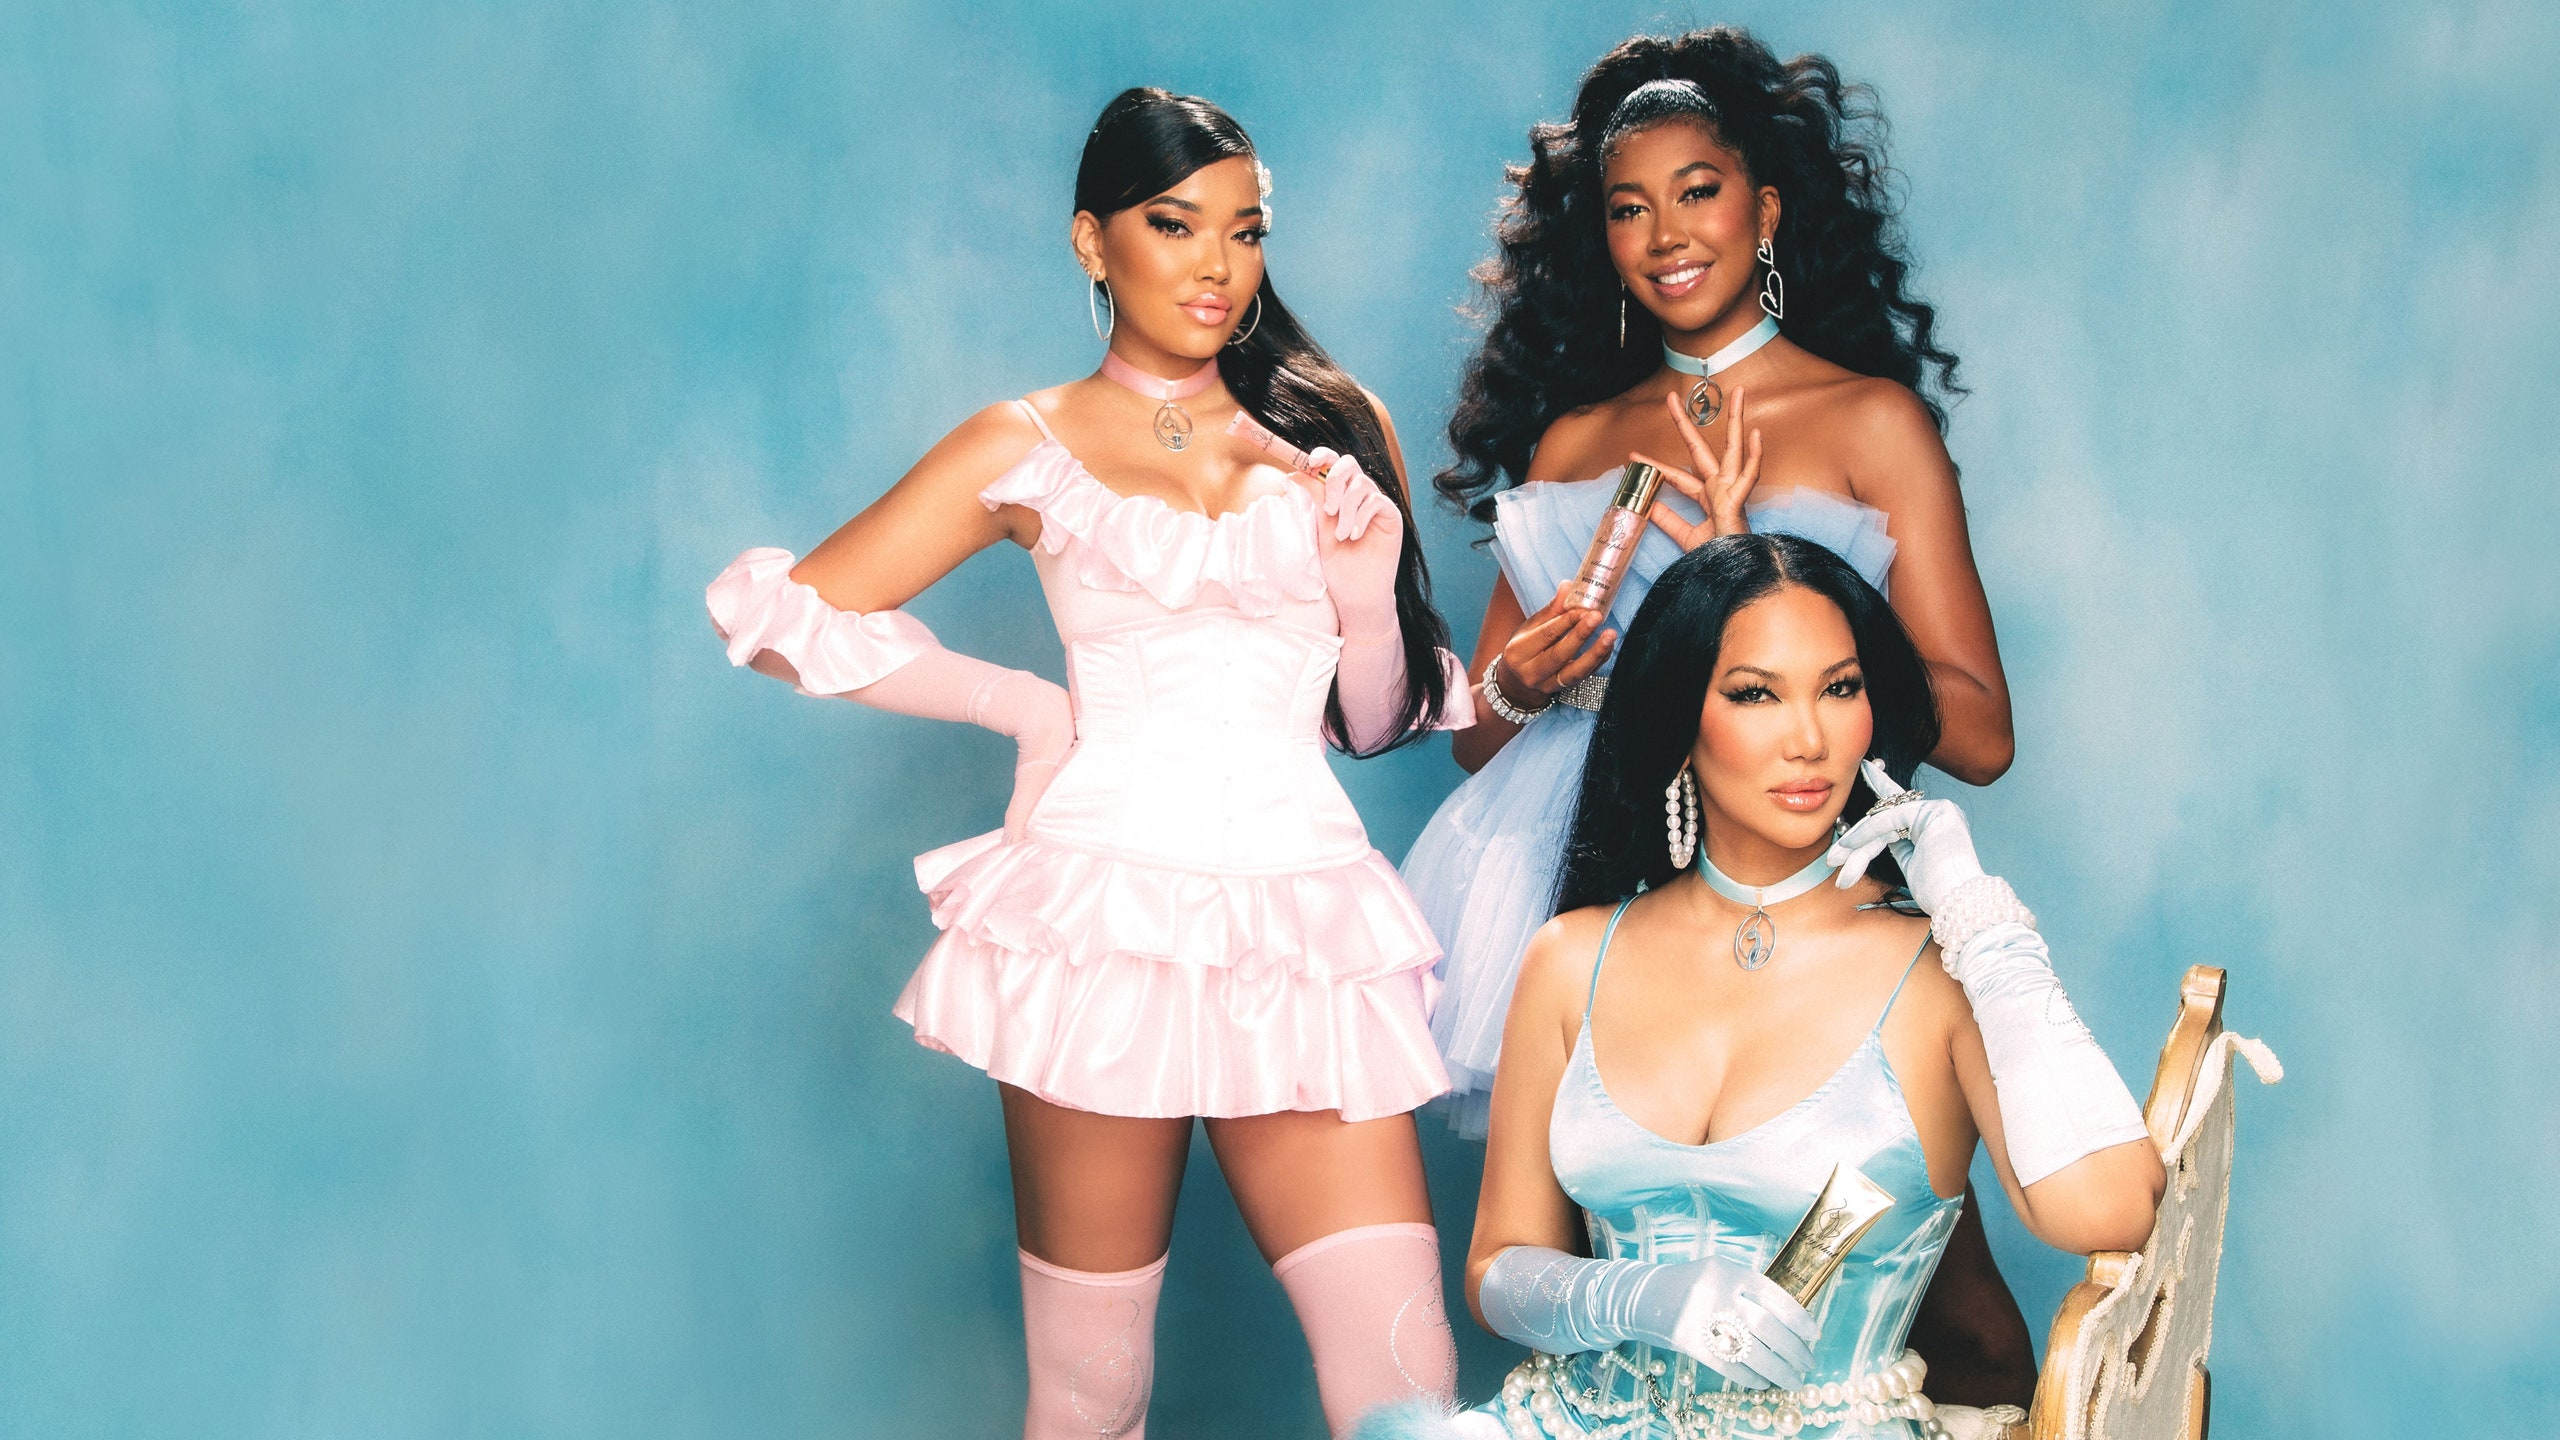 Baby Phat Beauty, the Revival of Early 2000's Glam